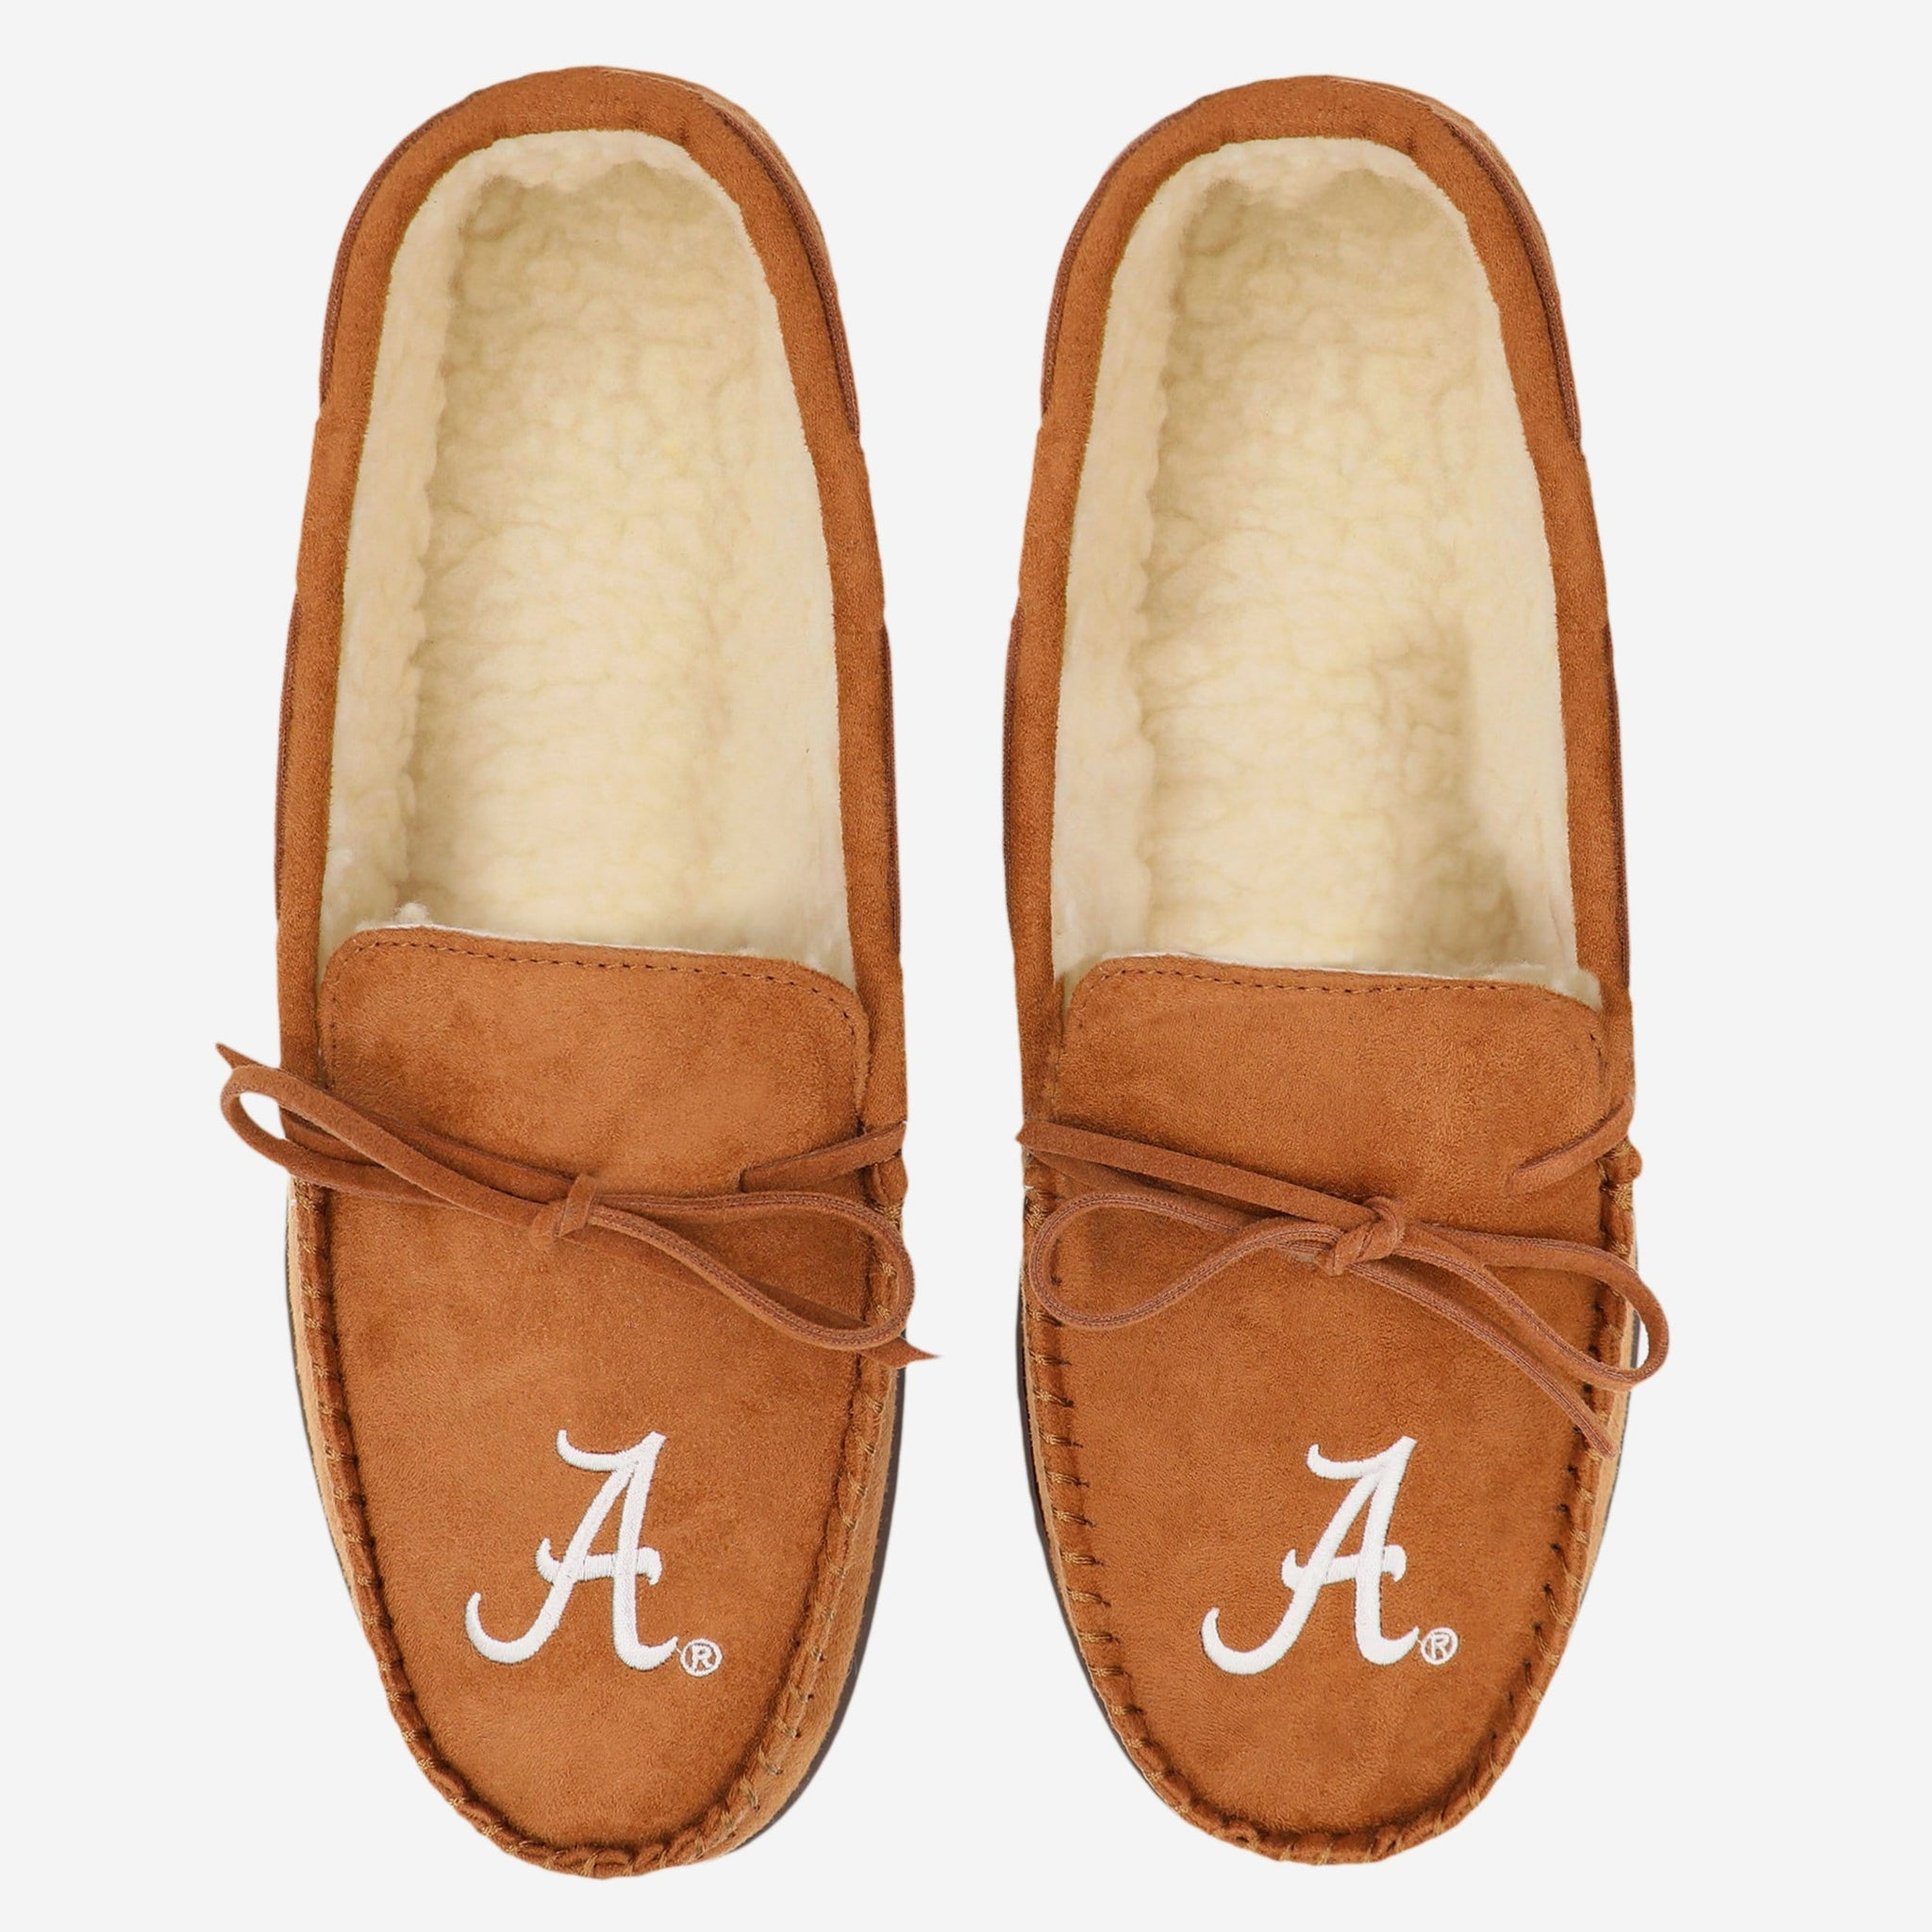 Alabama Crimson Tide Moccasin Slipper